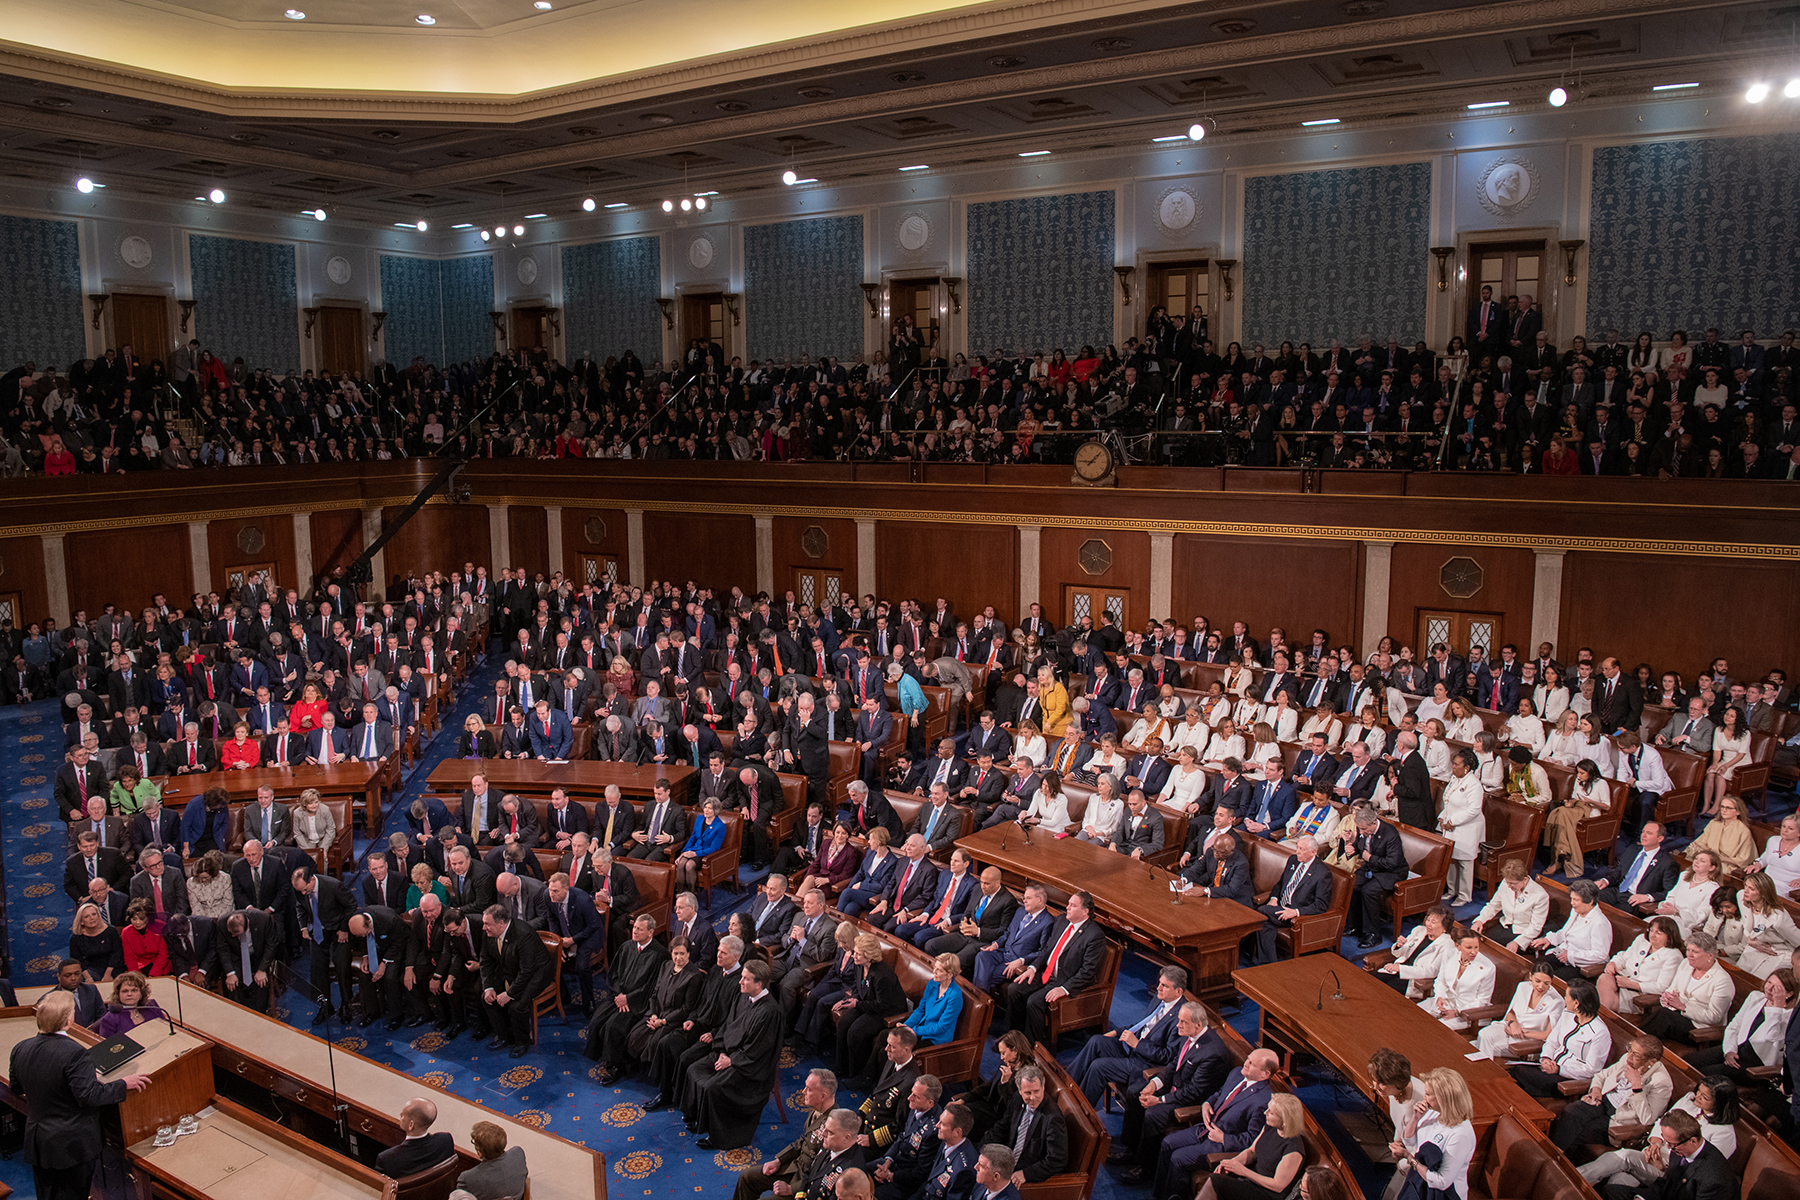 Members of Congress and inguished guests gathered to hear President Donald Trump